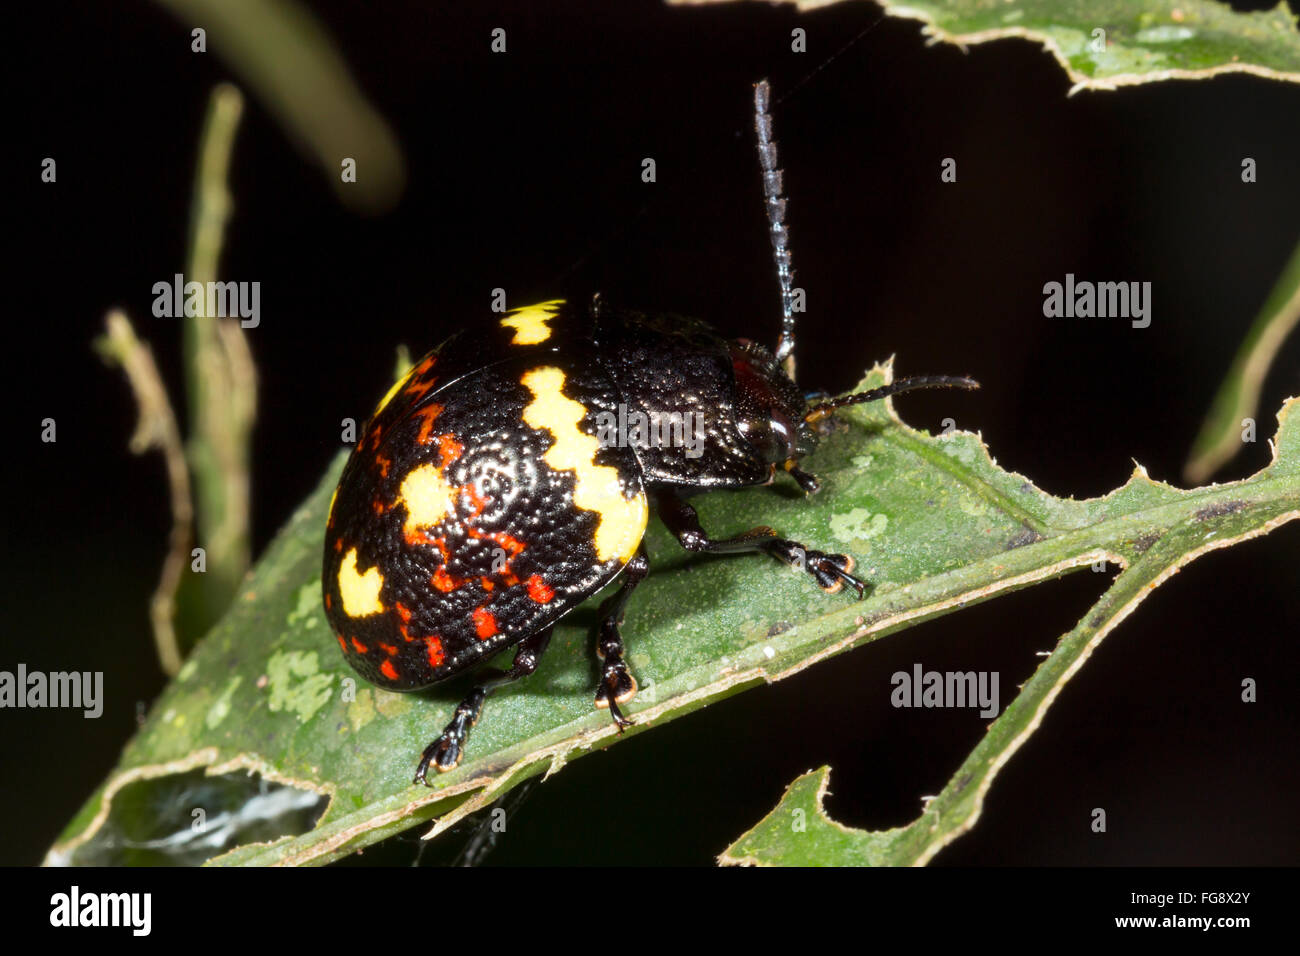 Pleasing Fungus Beetle on a leaf in the rainforest, Pastaza province, Ecuador - Stock Image